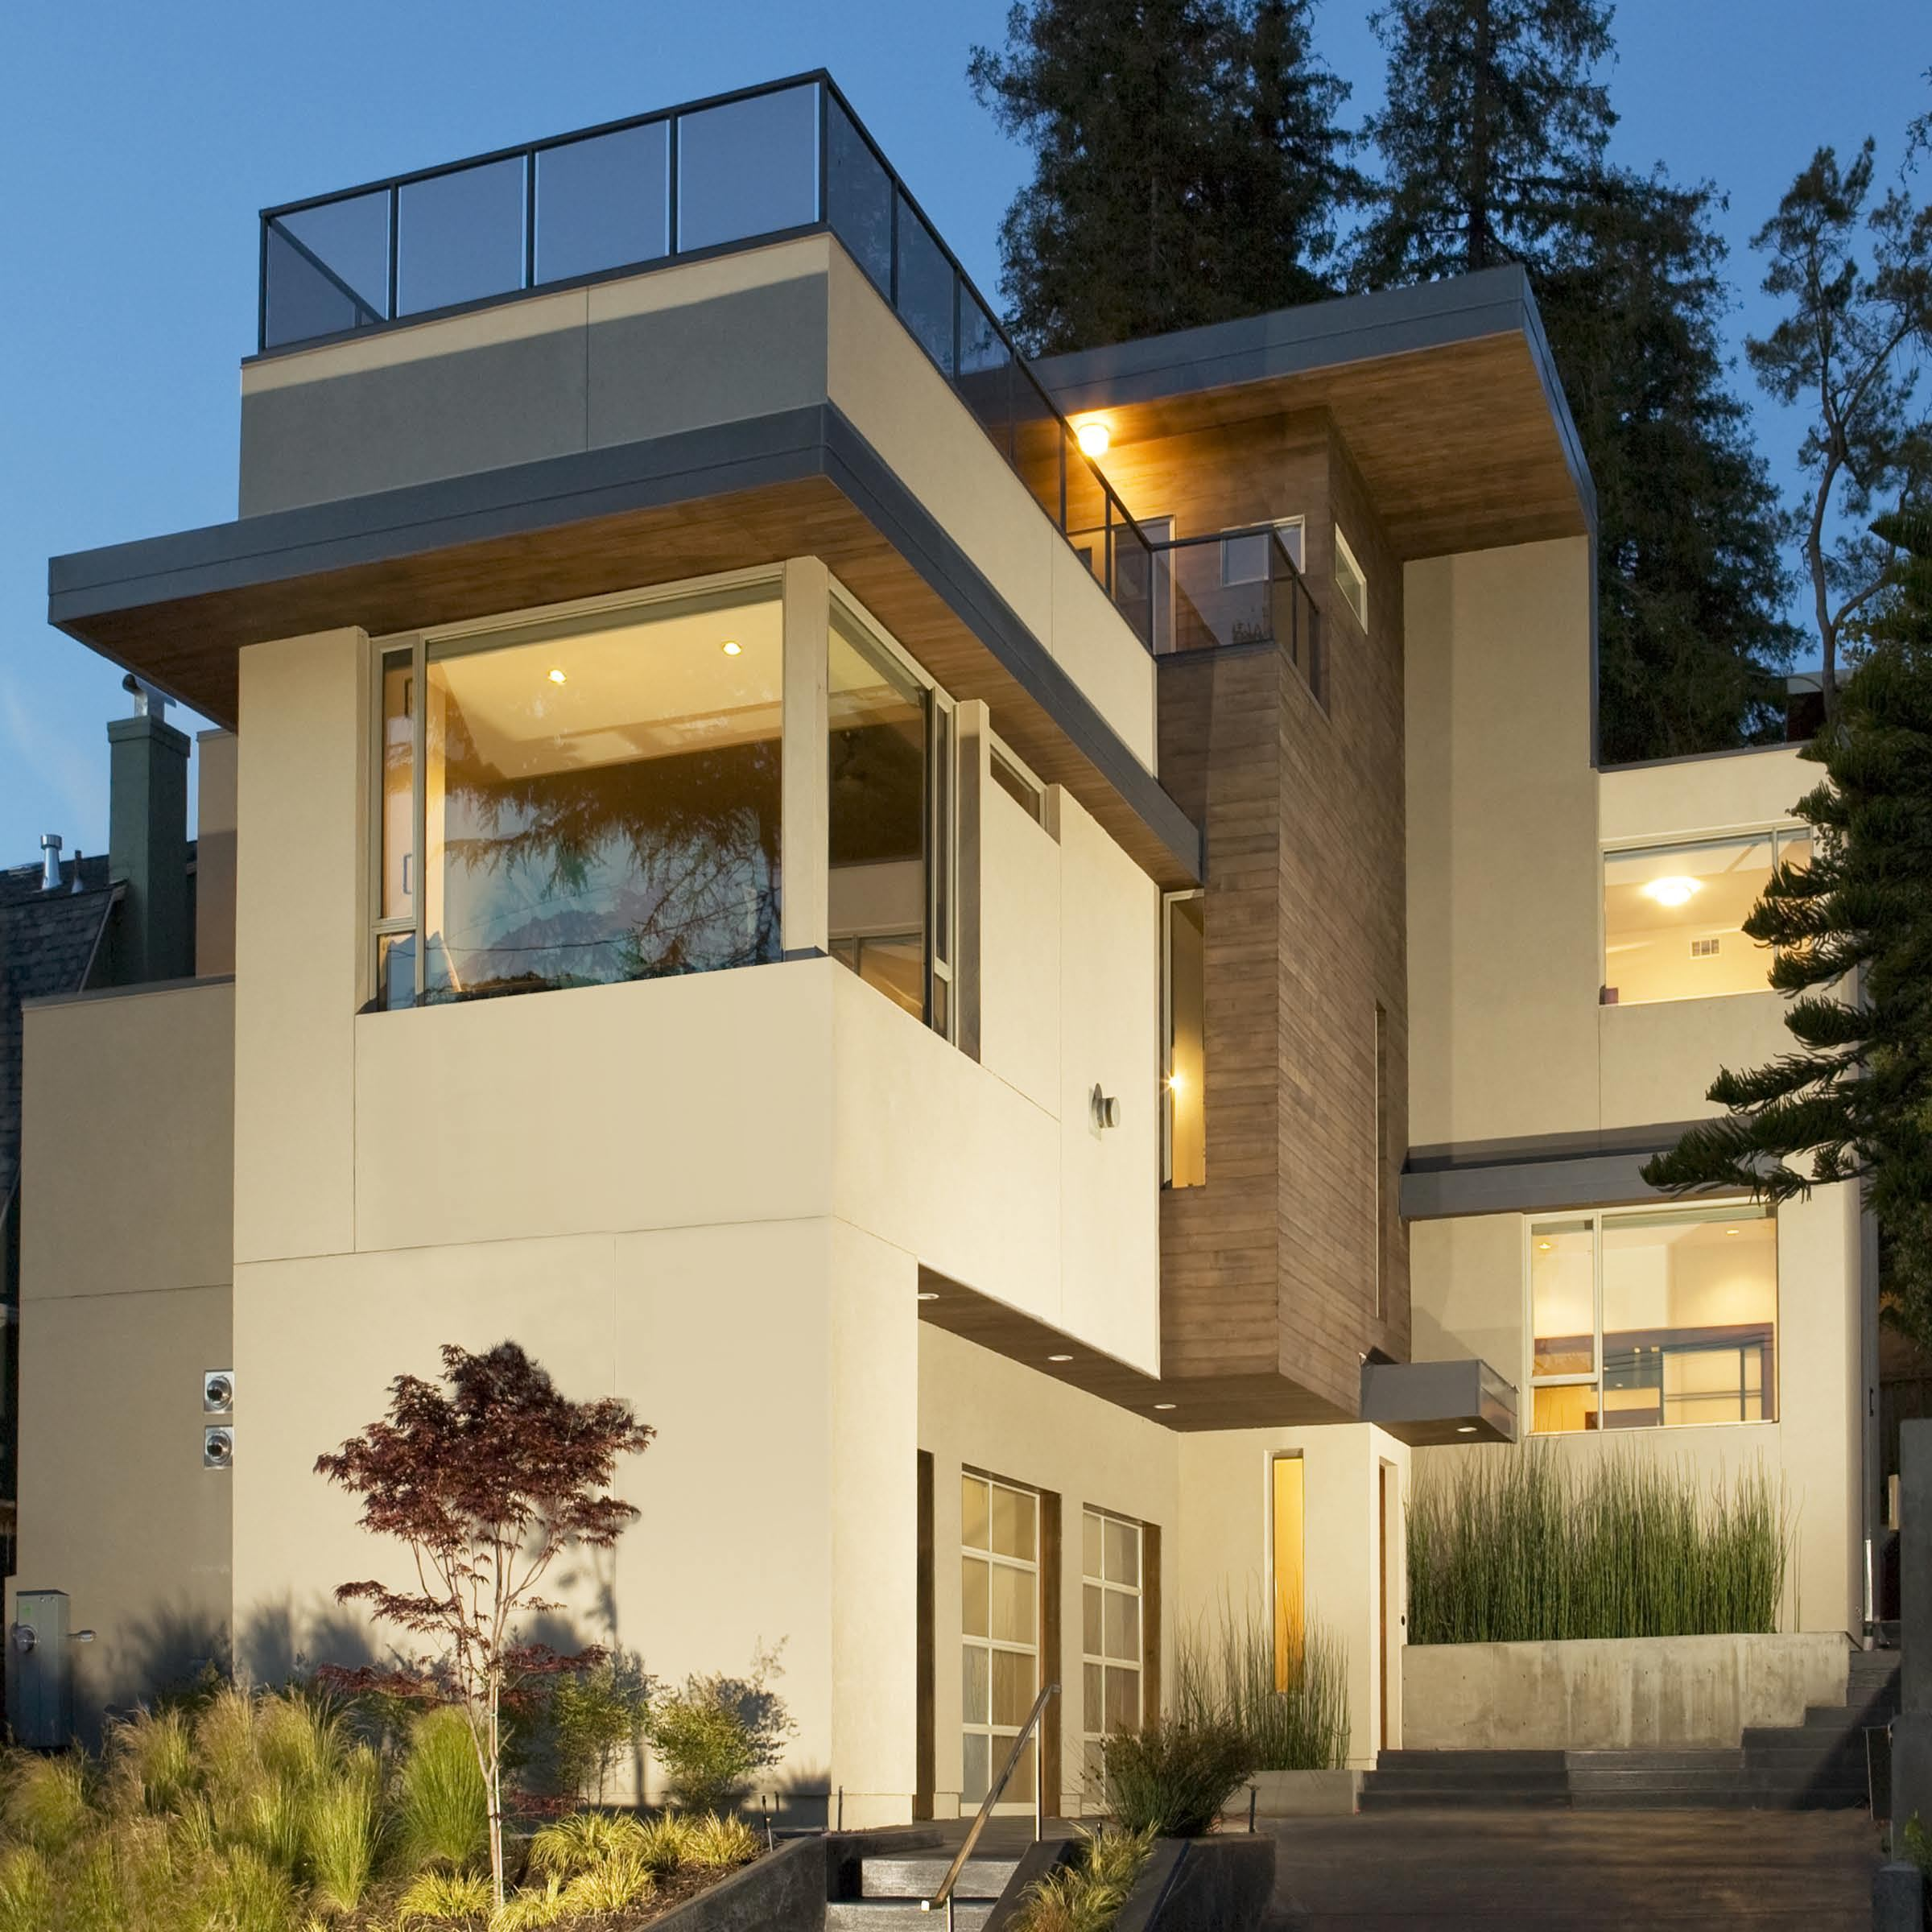 Modern House Exterior Materials: Structural Insulated Panels Have Many Fans, So Why Don't